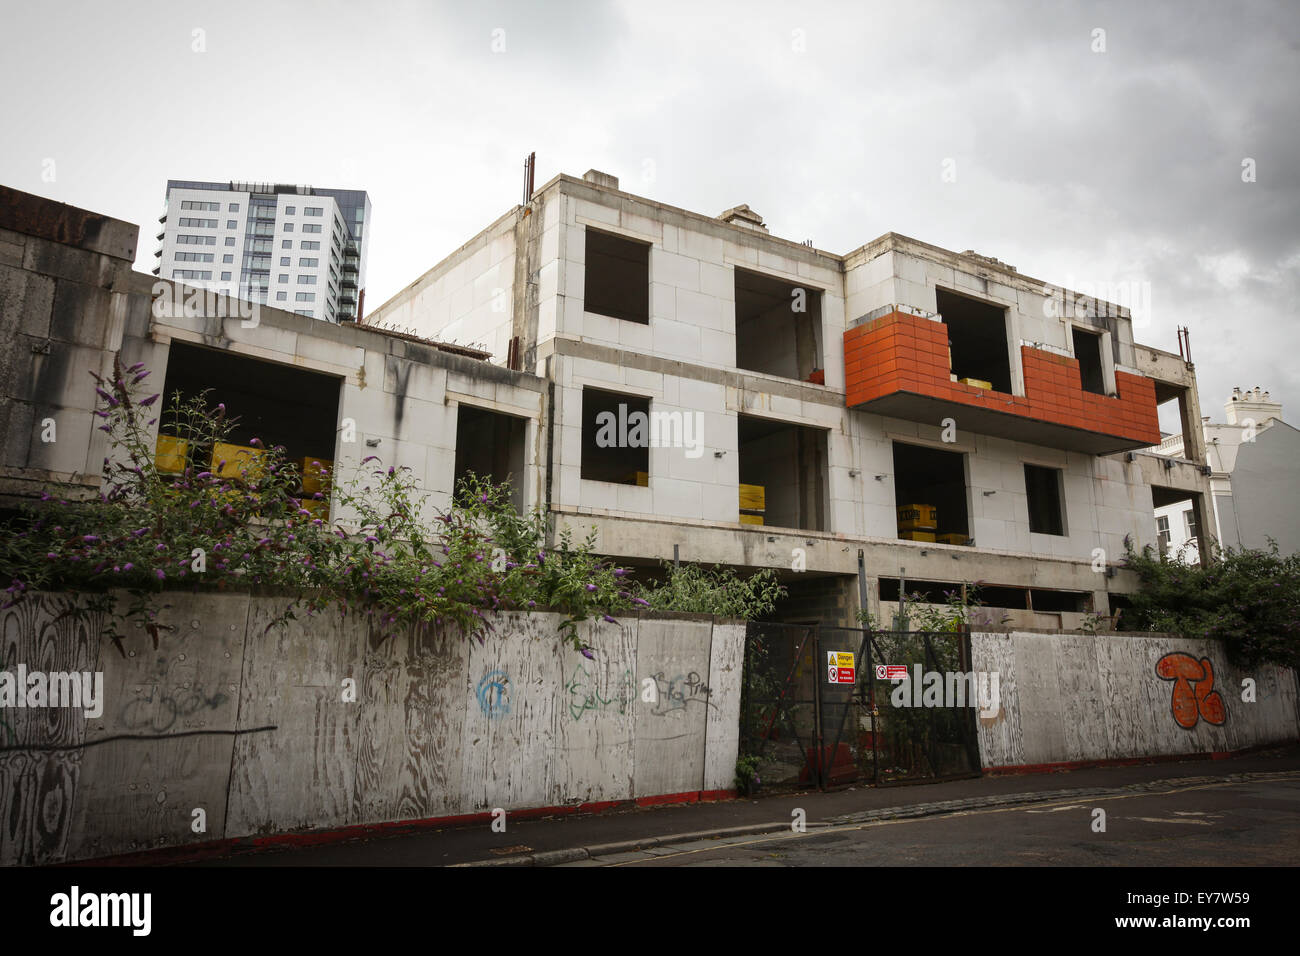 Abandoned building project that has been derelict for years after construction stopped during the recession - Stock Image